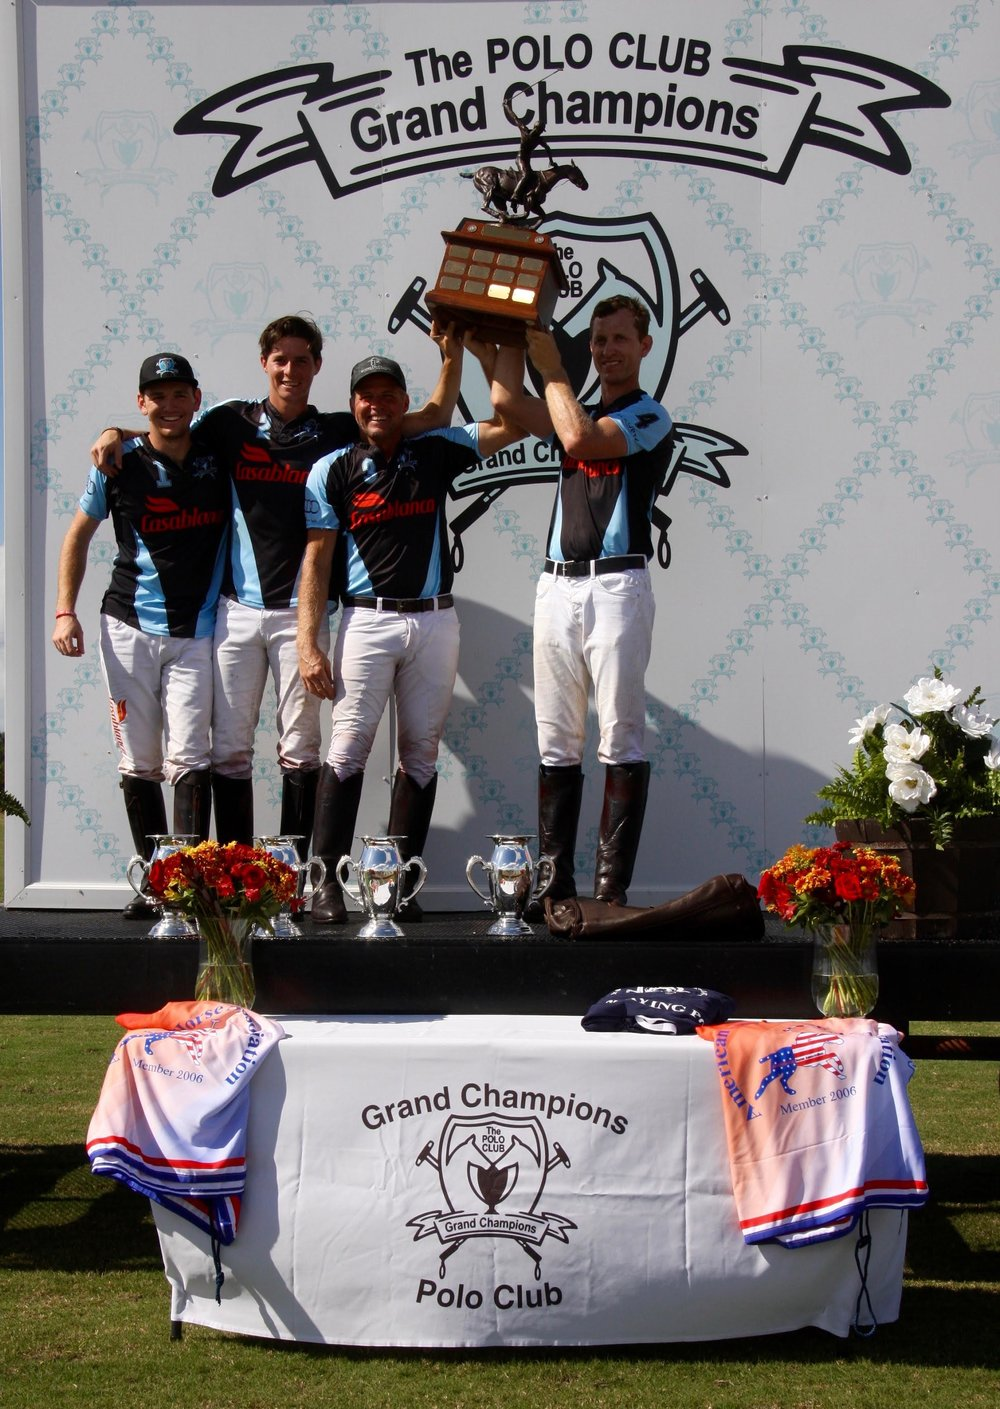 Casablanca teammates Grant Ganzi, Juancito Bollini, Mike Azzaro and Jeff Blake hoisting the coveted trophy. Photo by Sheryel Aschfort